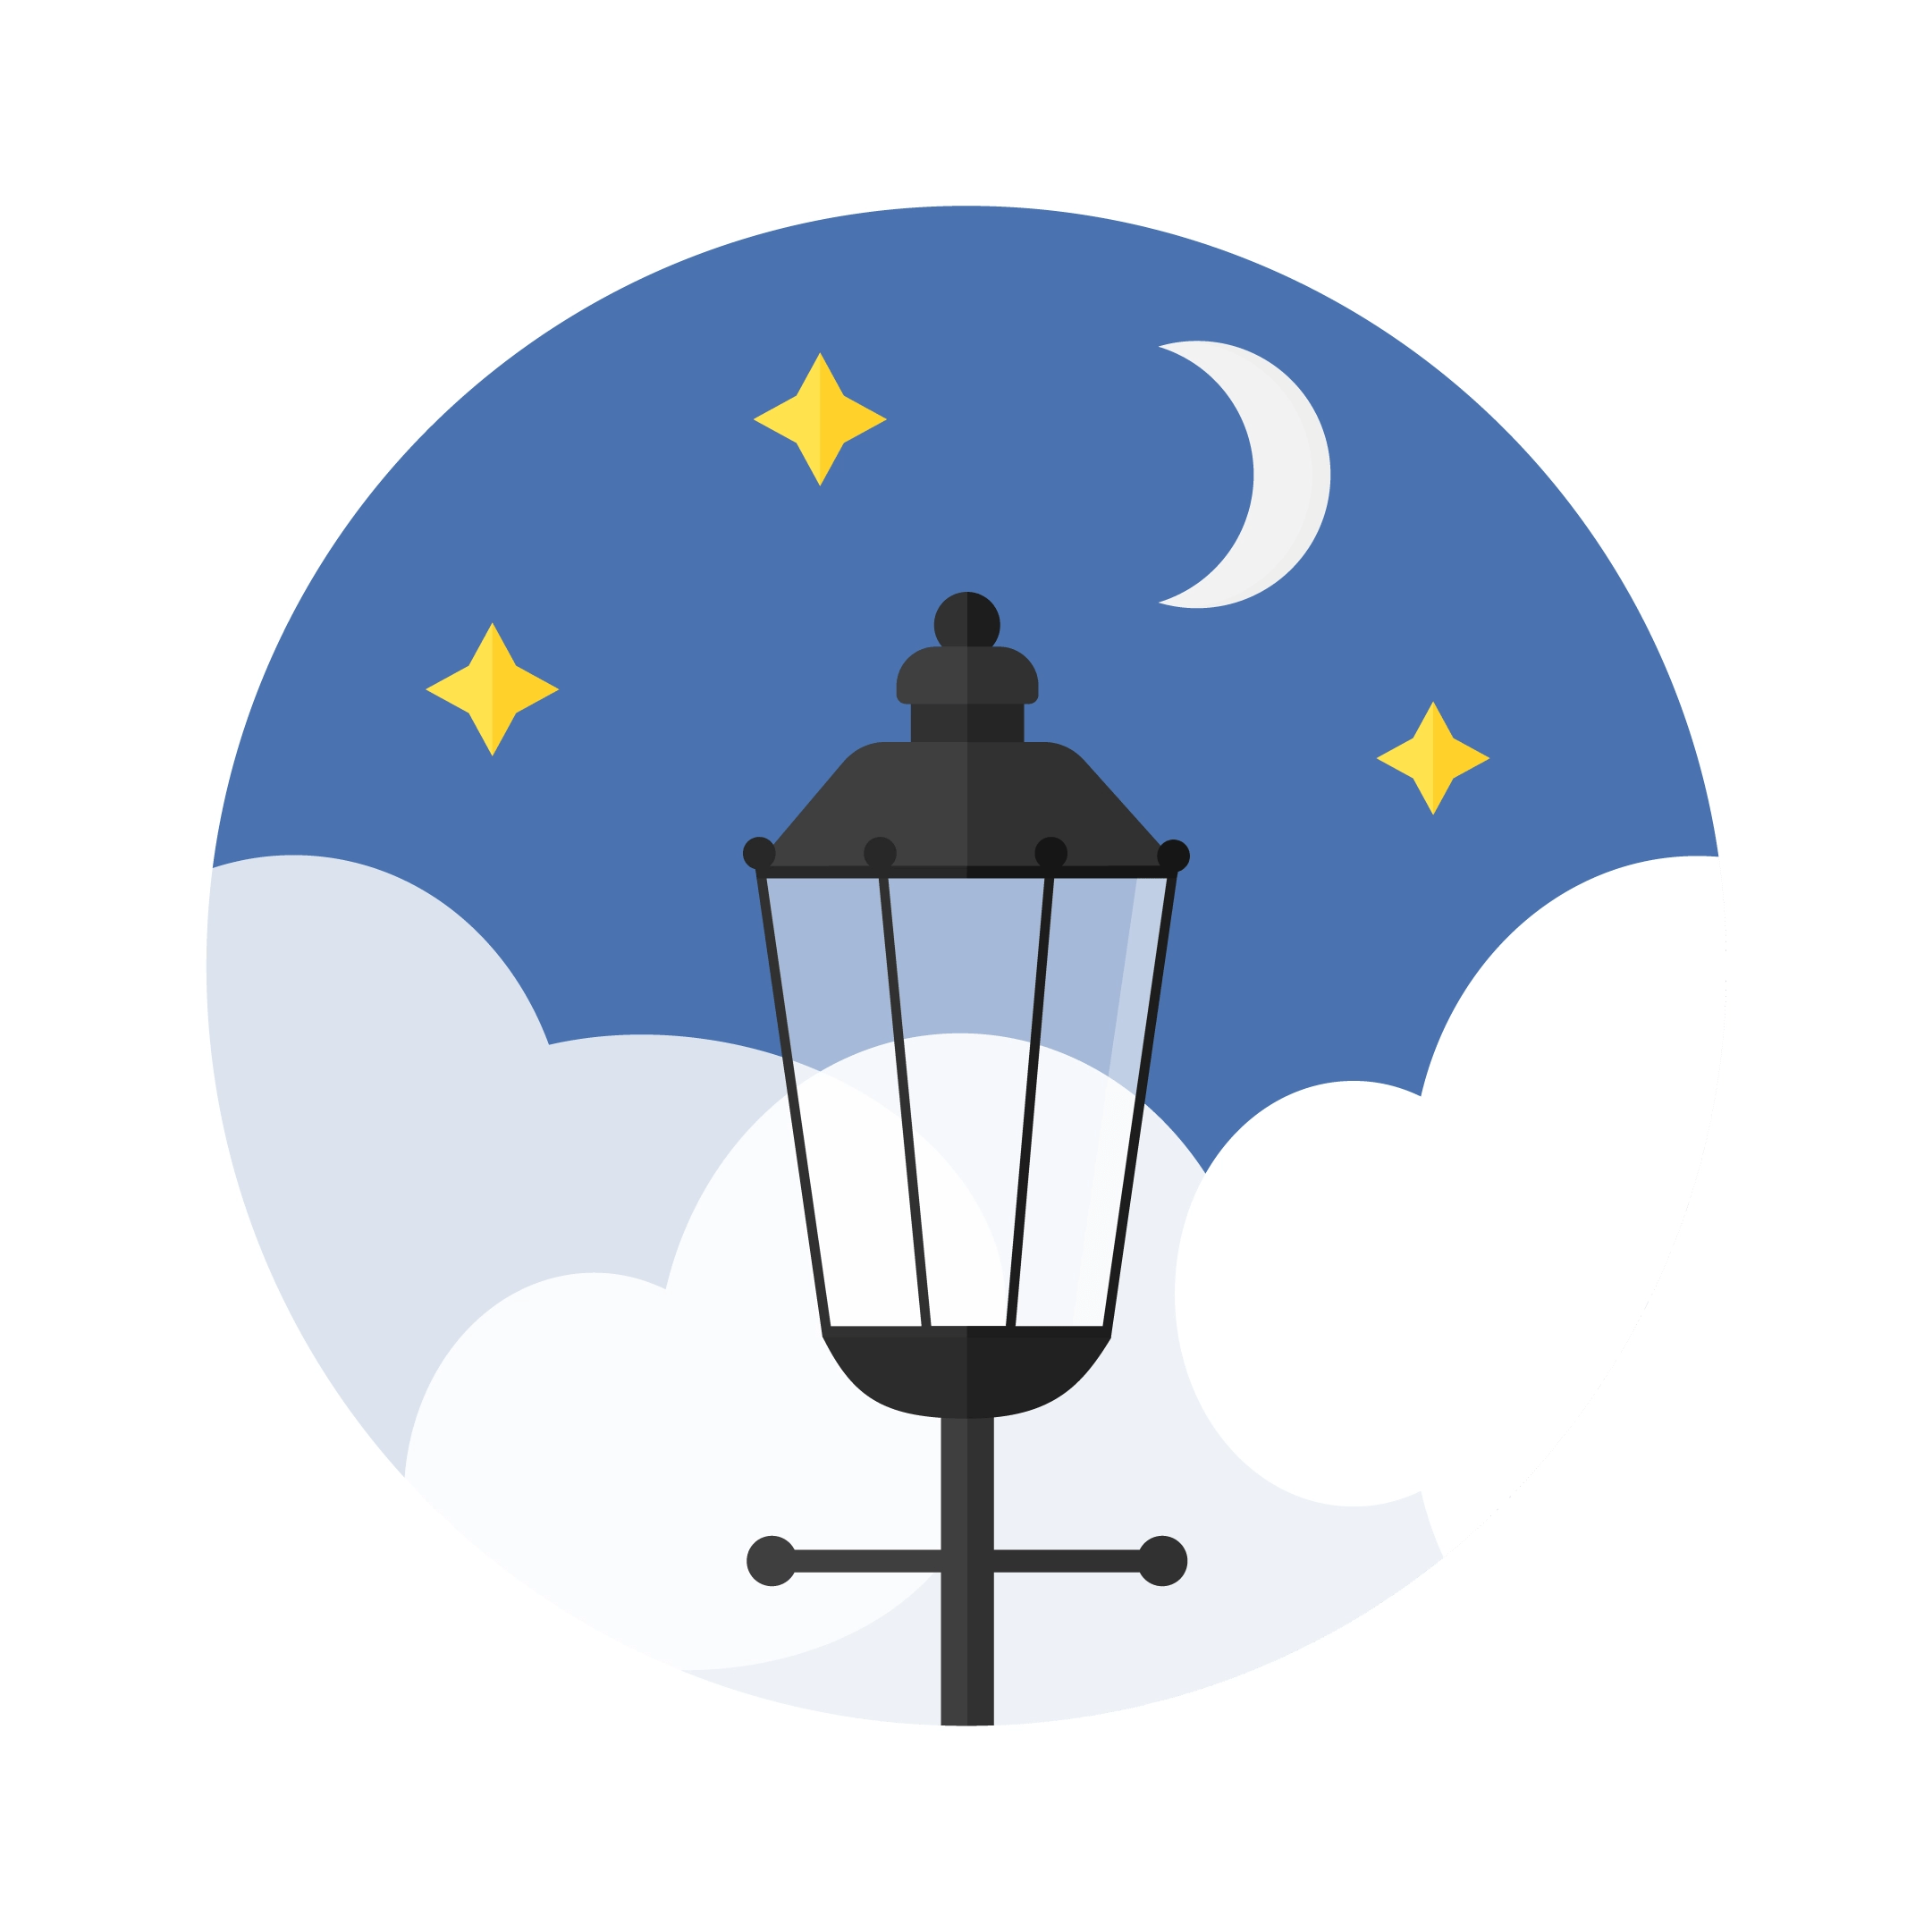 Vector illustration of a night scene with moon & stars with London's street lamp in flat design style